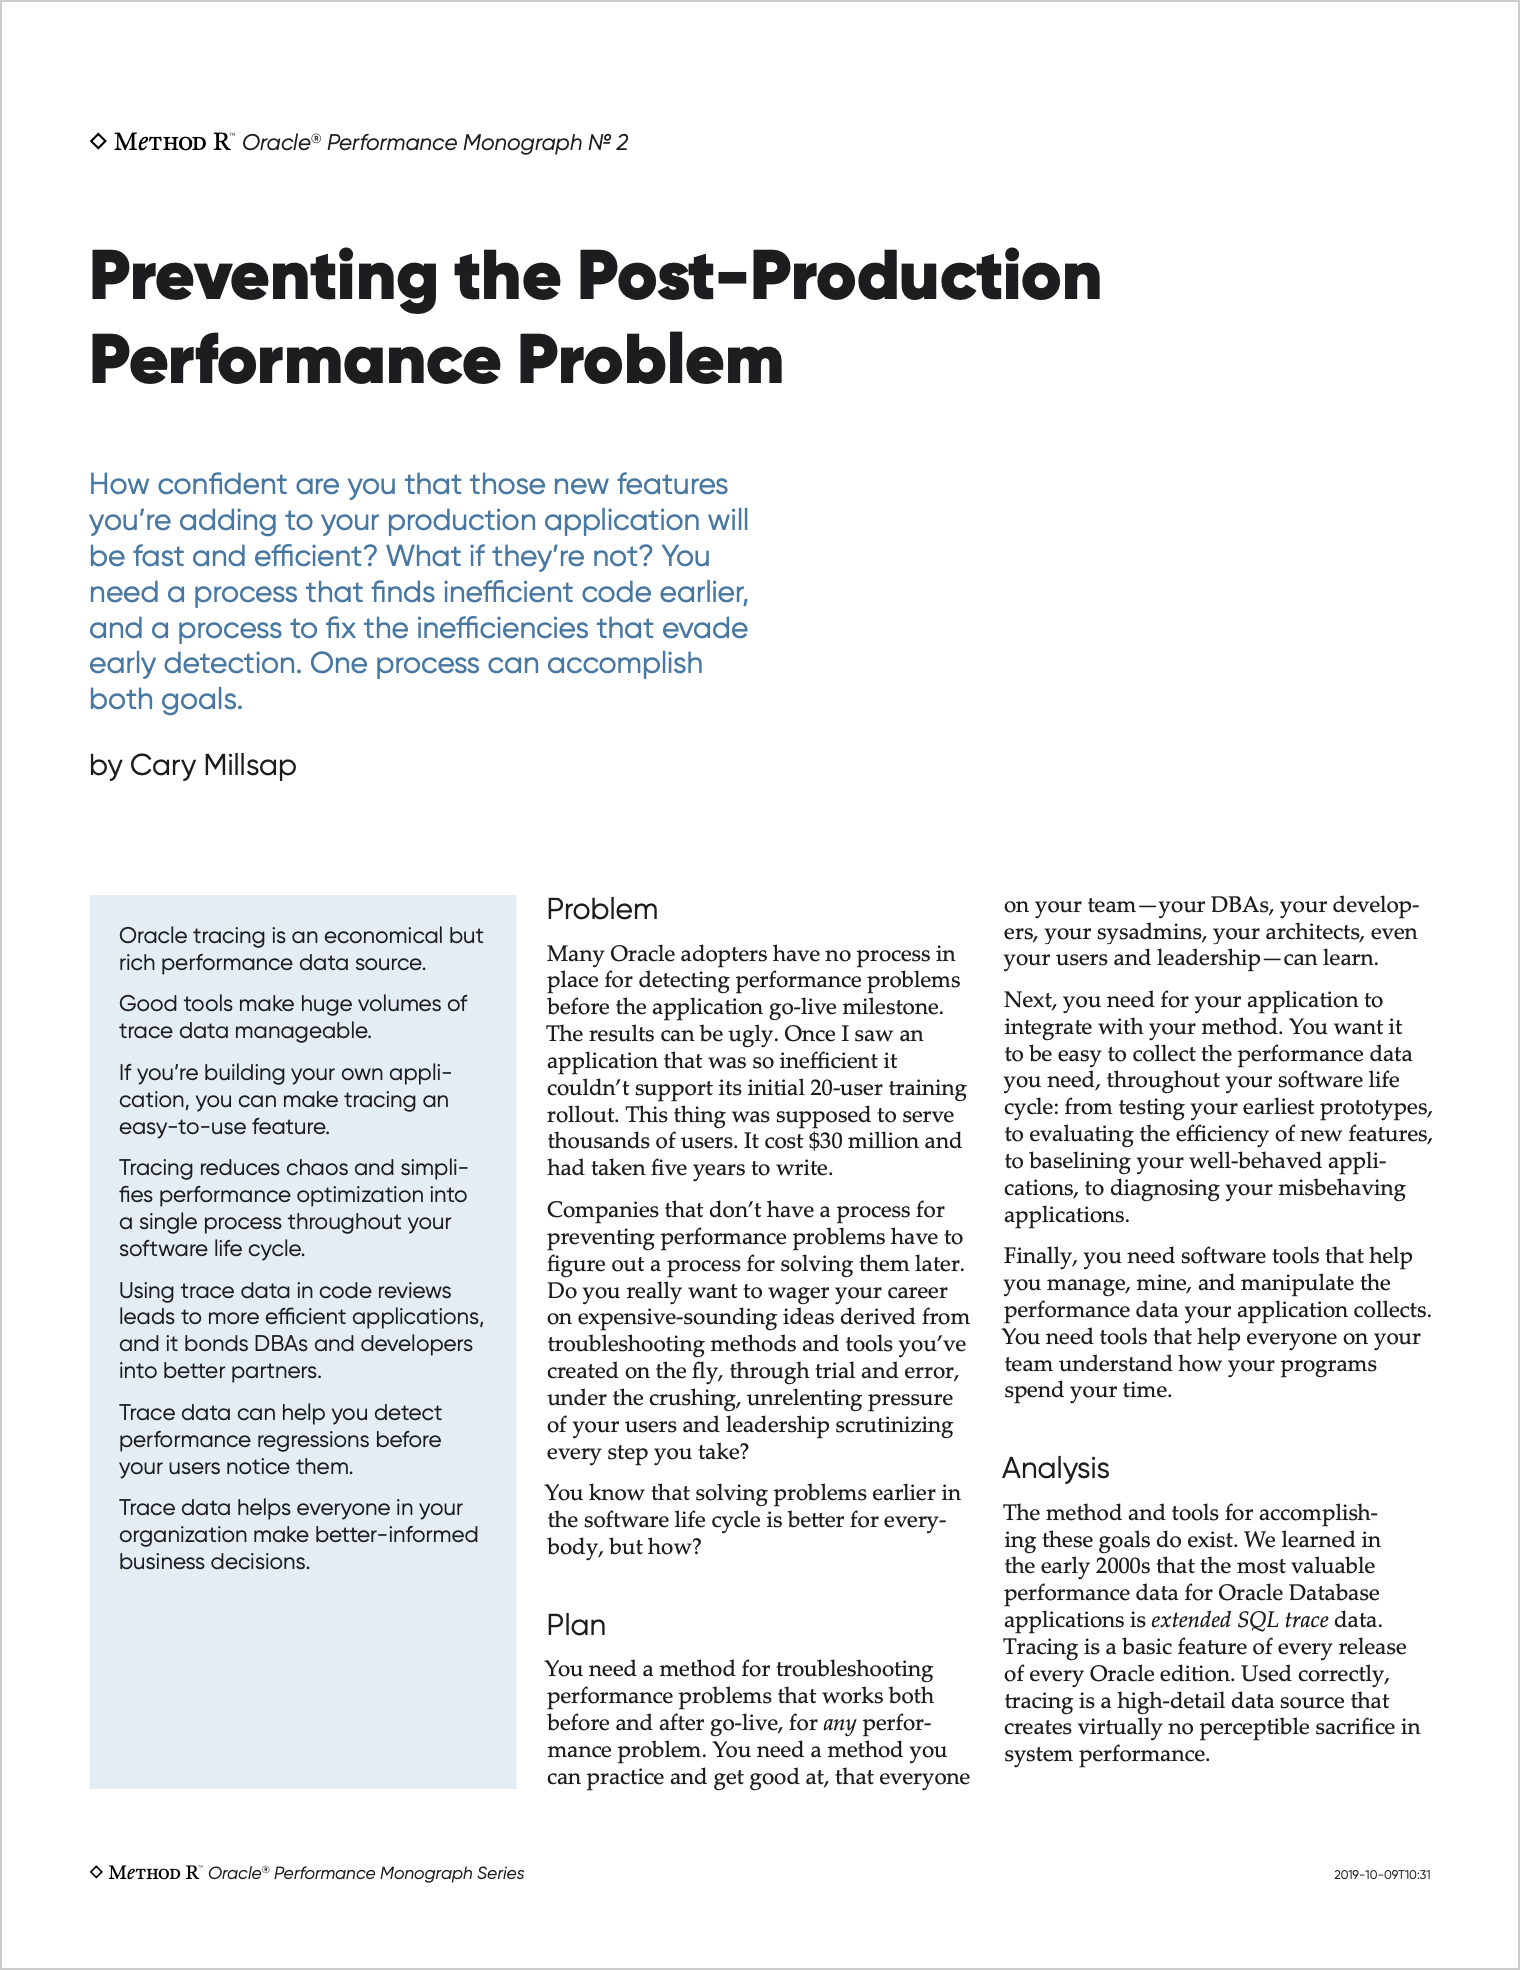 Preventing the Post-Production Performance Problem